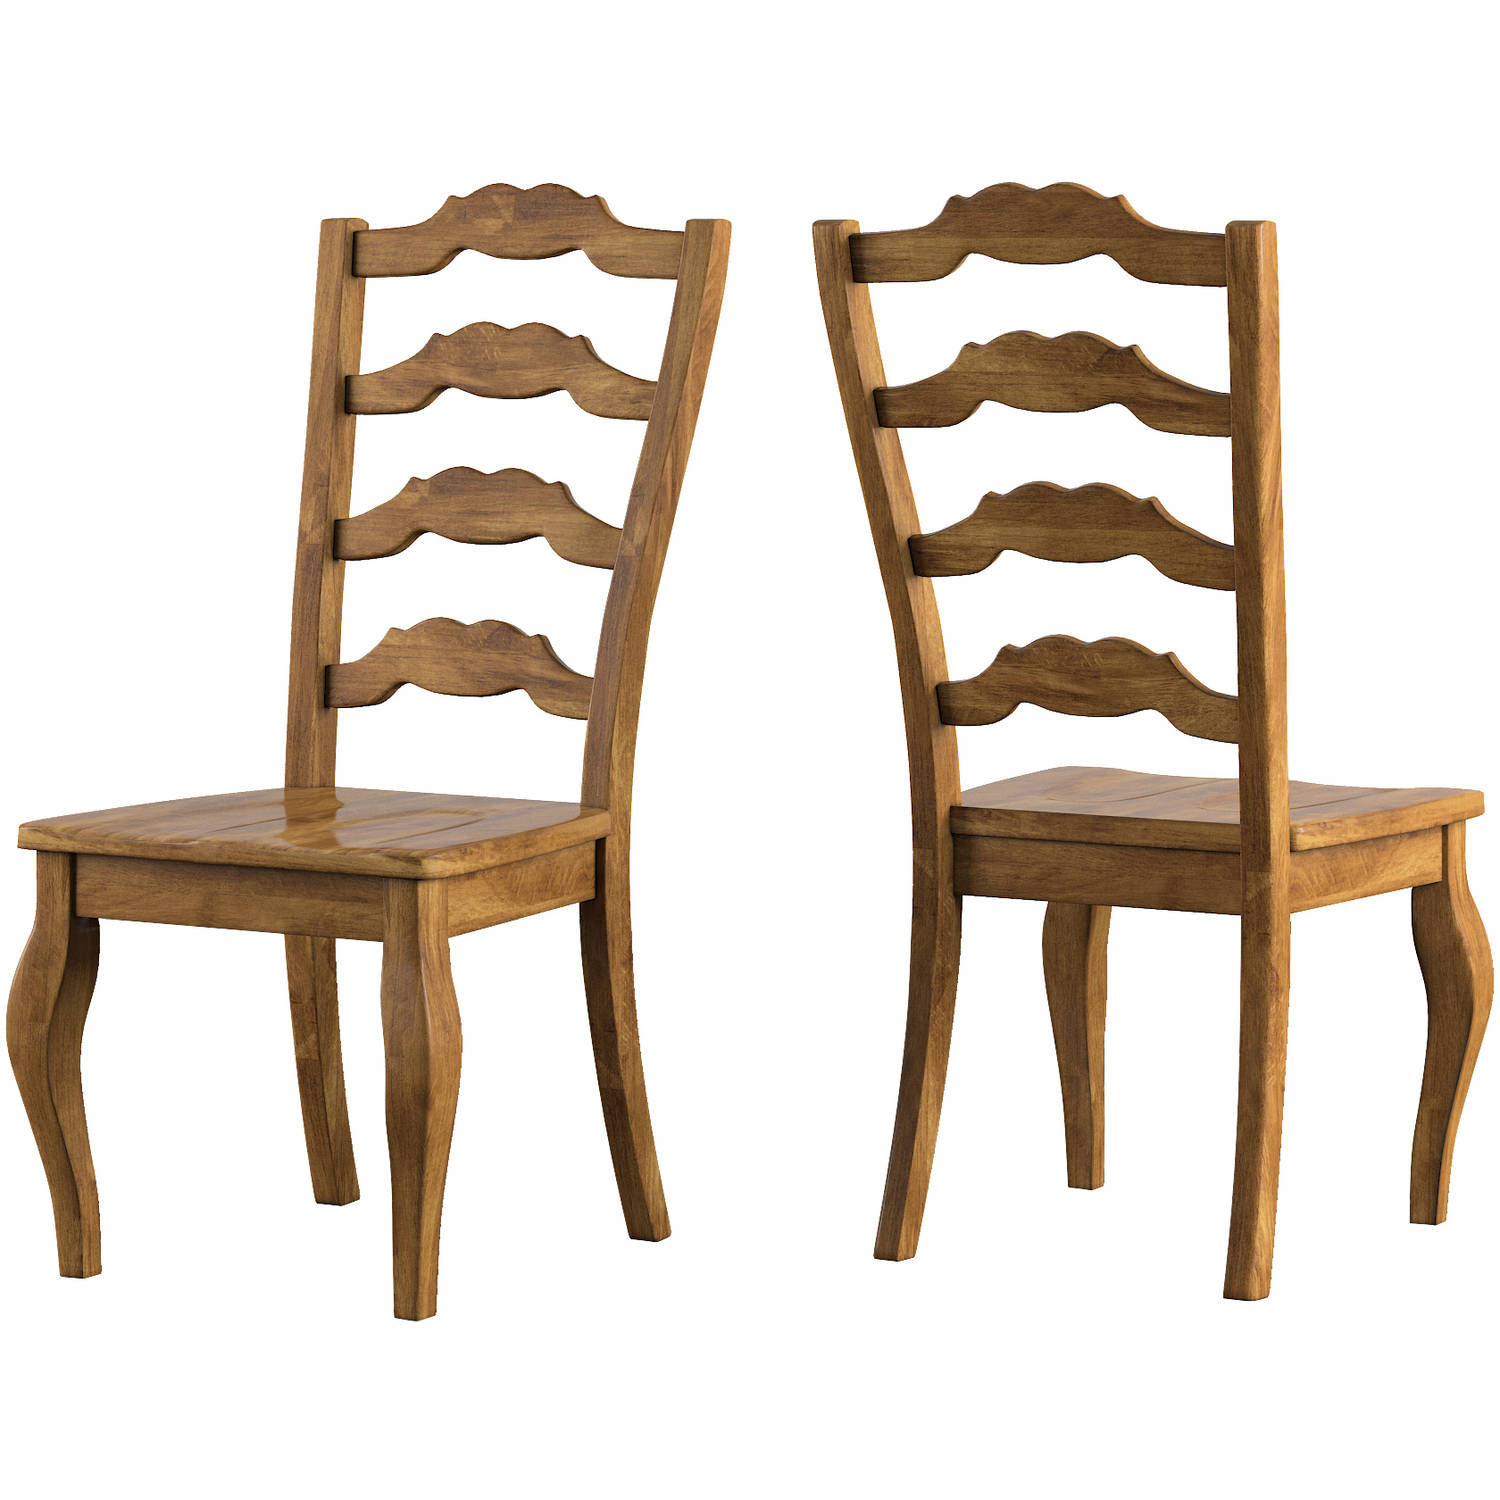 Weston Home Farmhouse Dining Chair With French Ladder Back Set Of 2 Walmart Com Walmart Com